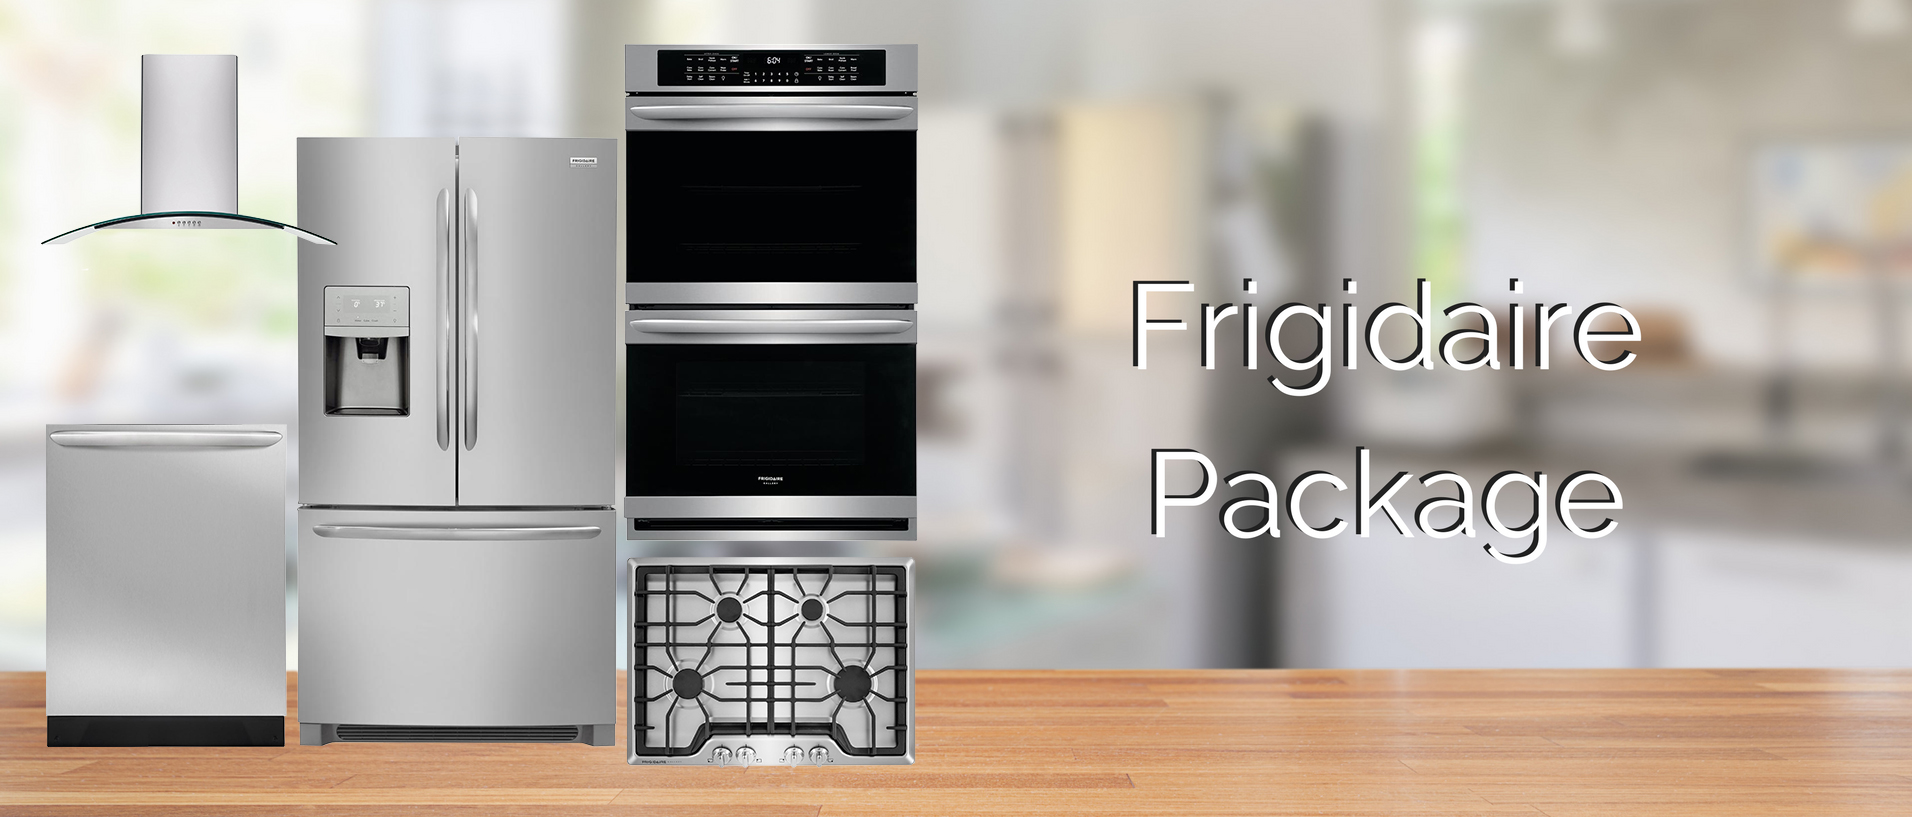 Frigidaire kitchen package with French door refrigerator cooktop hood double wall oven and dishwasher